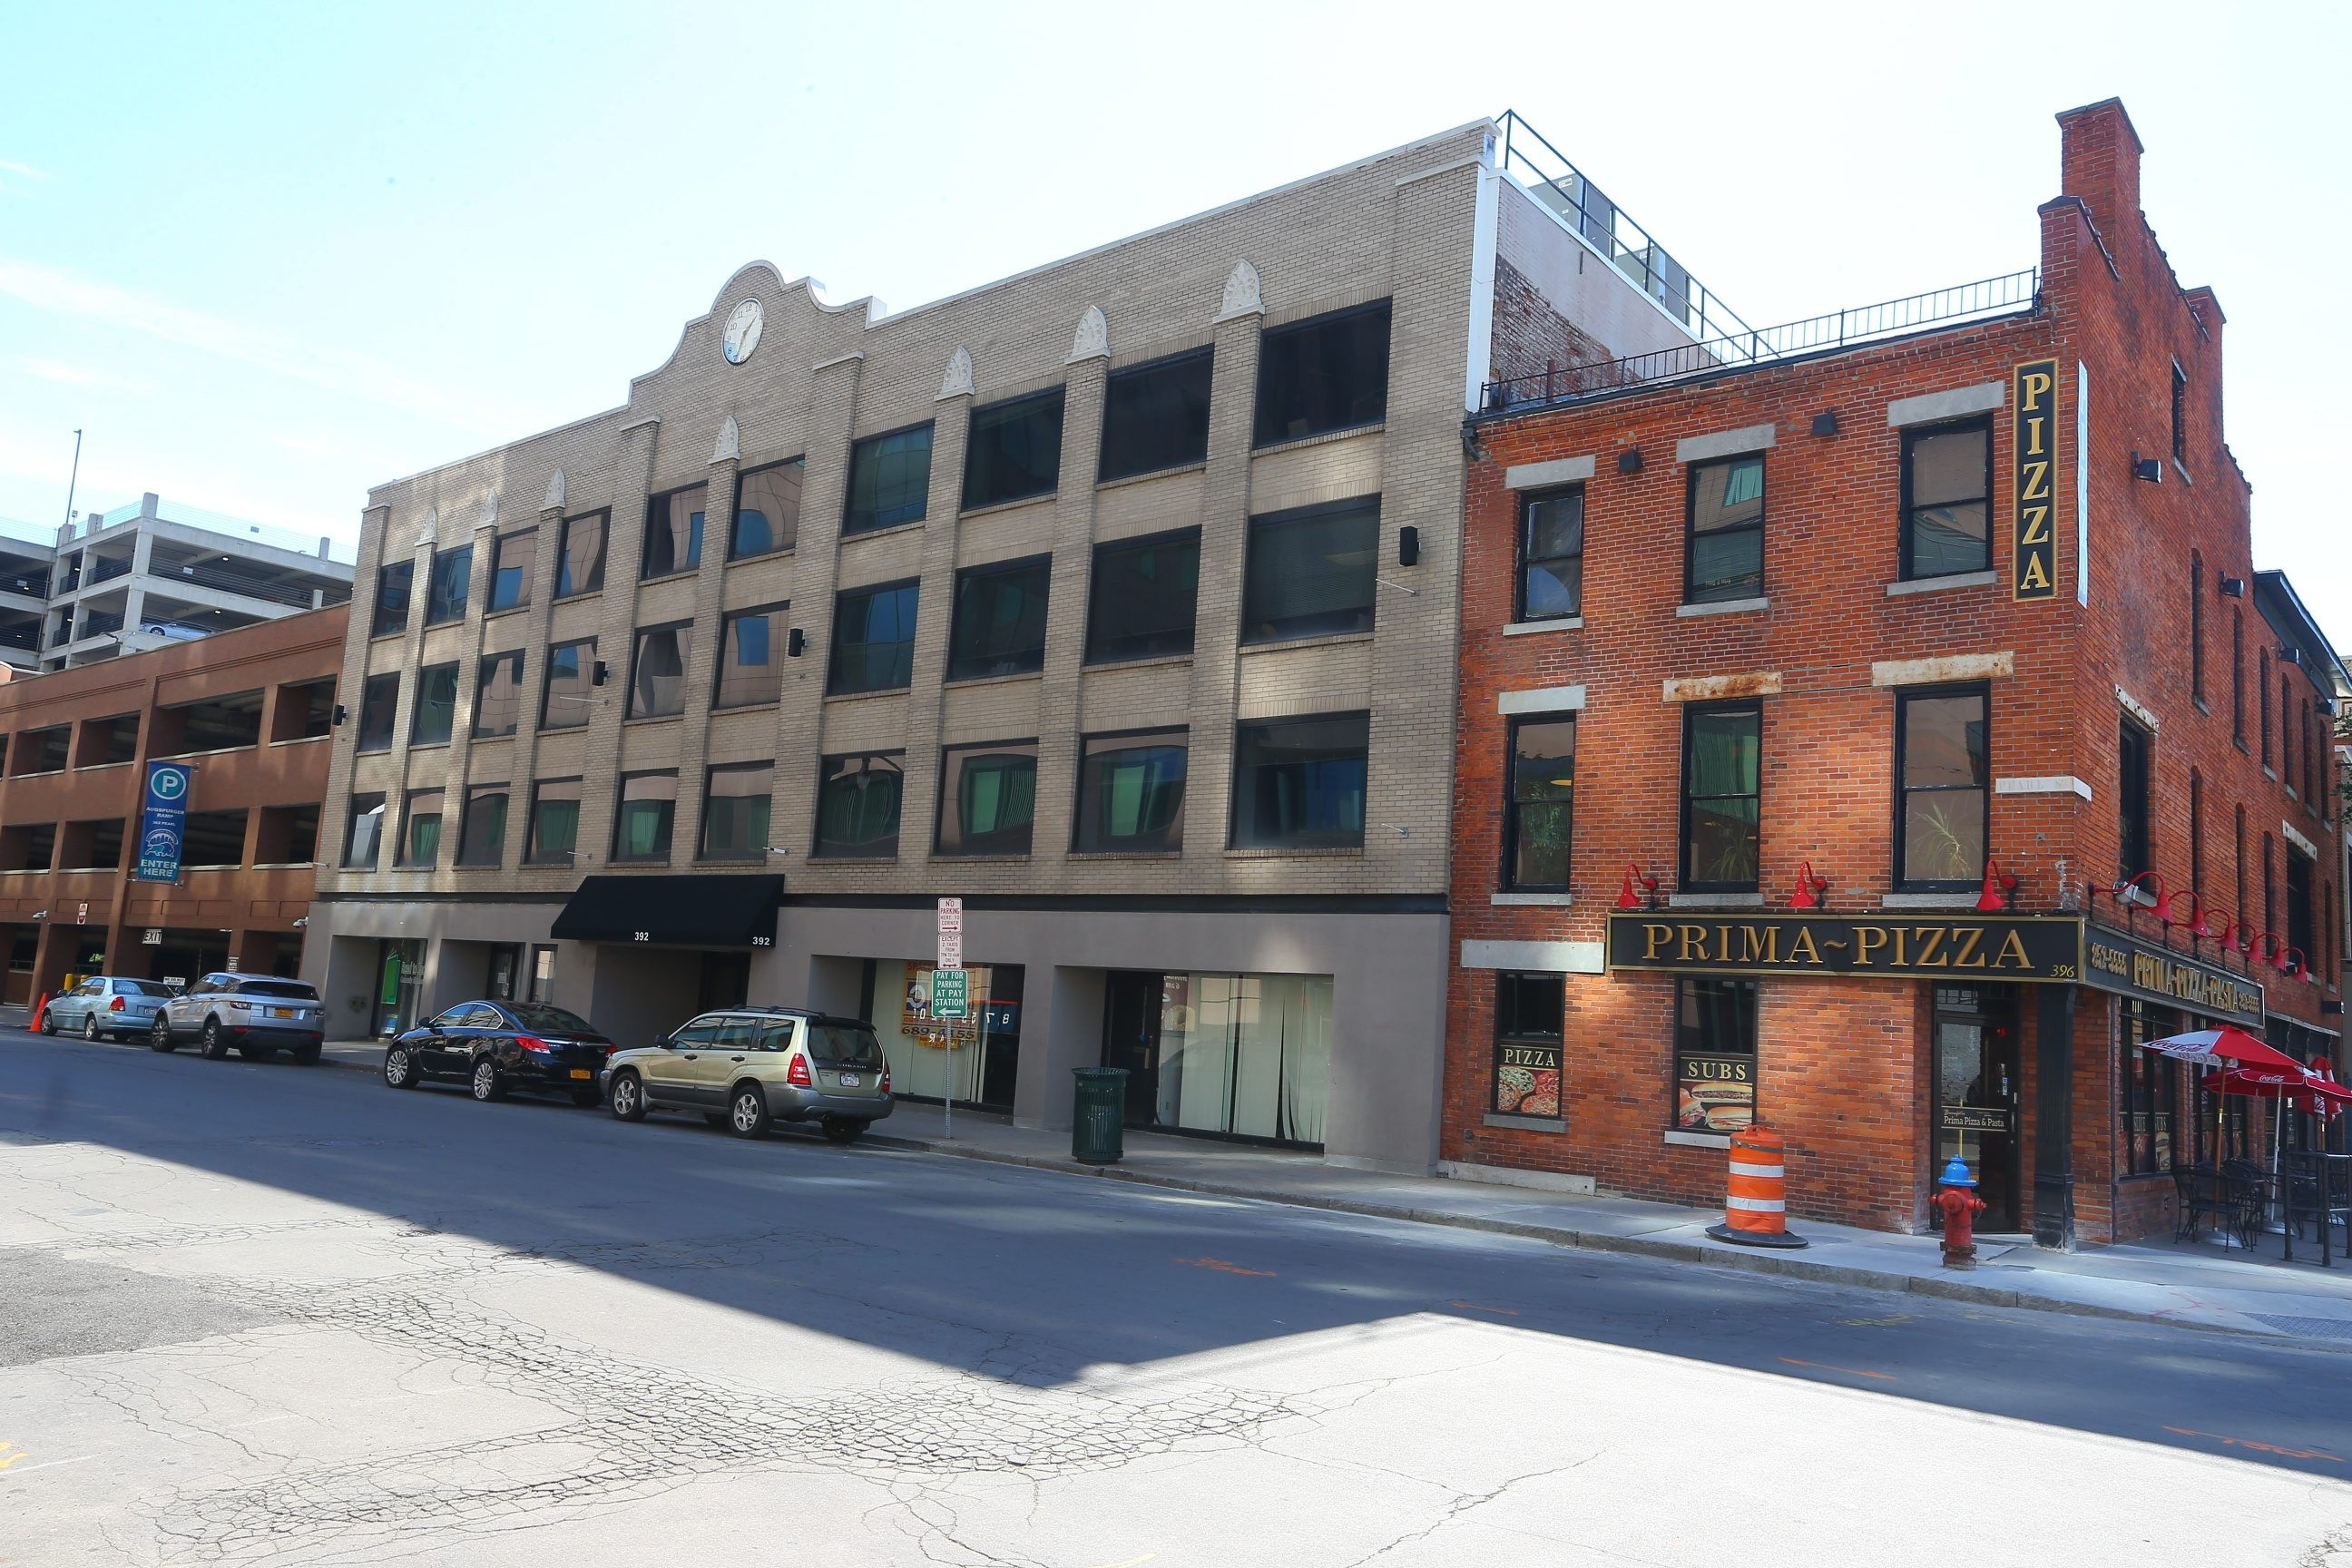 New York City investor Harvey Kaylie bought this four-story office building at 92 Pearl St. for $1.675 million.